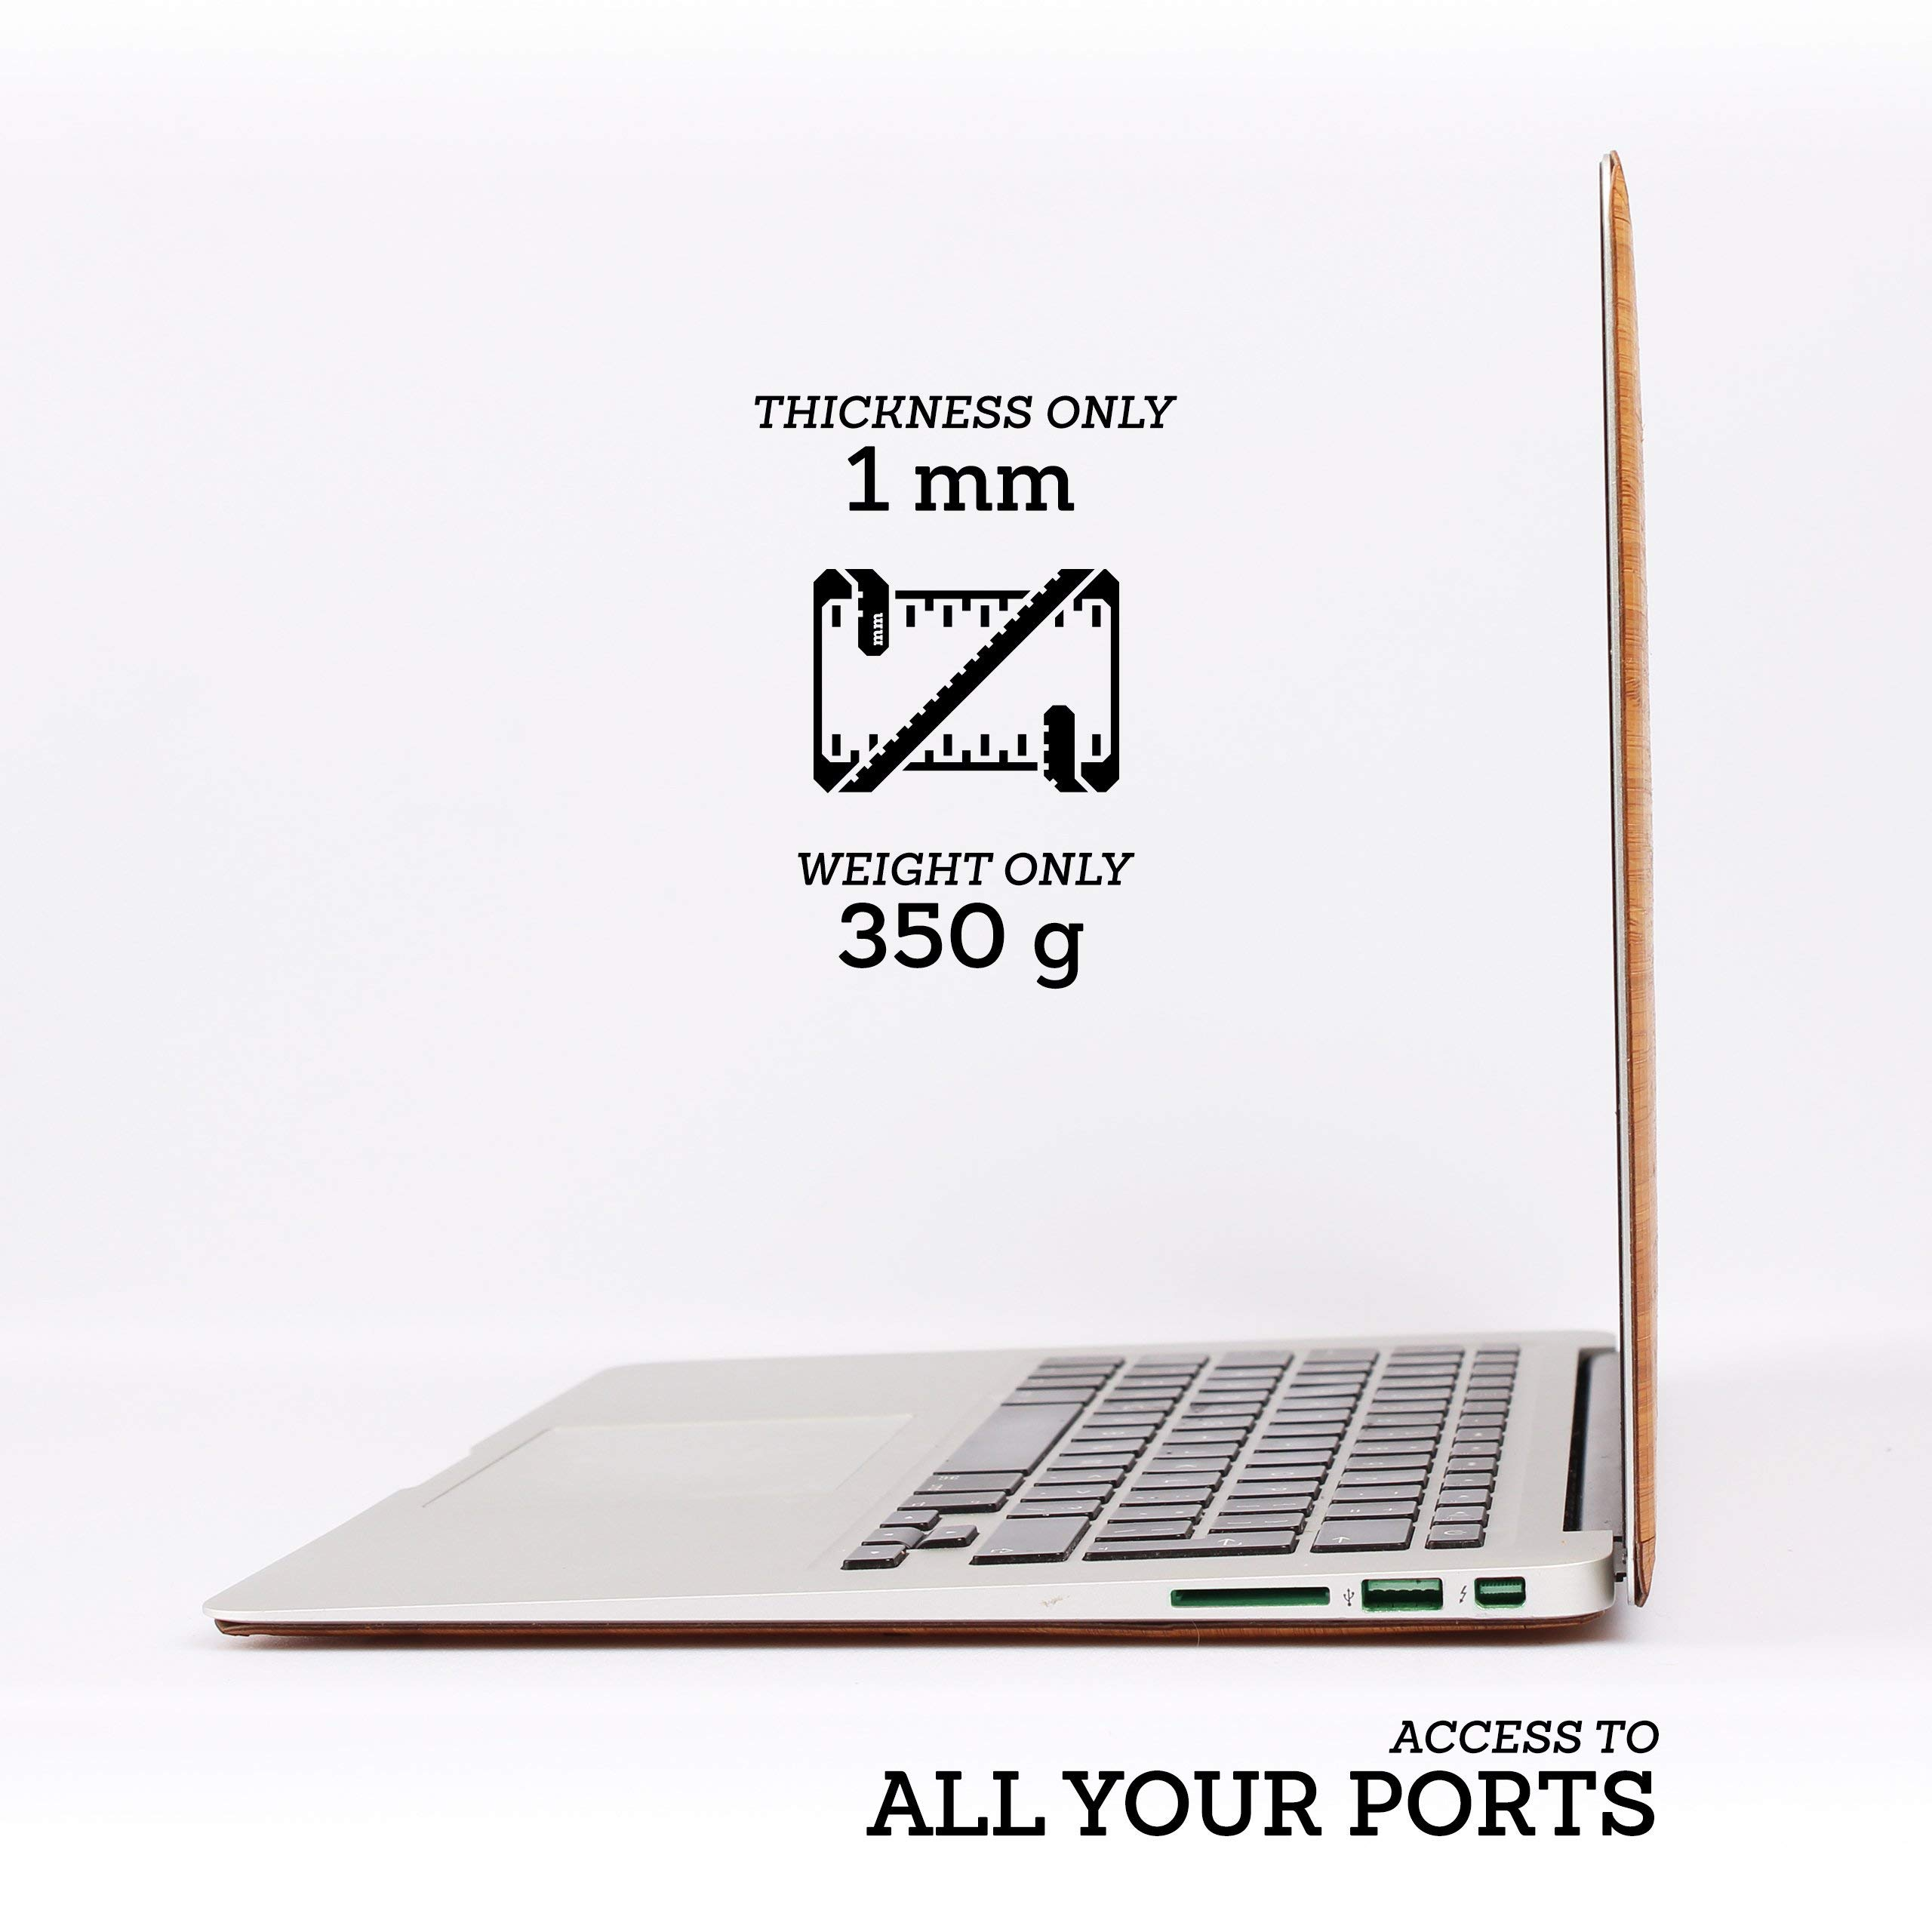 WOODWE Real Wood MacBook Skin for Mac Air 13 inch Non Retina Display   Model: A1237/A1304/A1369/A1466; Early 2008 - Mid 2017   Natural Bamboo   TOP ONLY by WOODWE (Image #3)